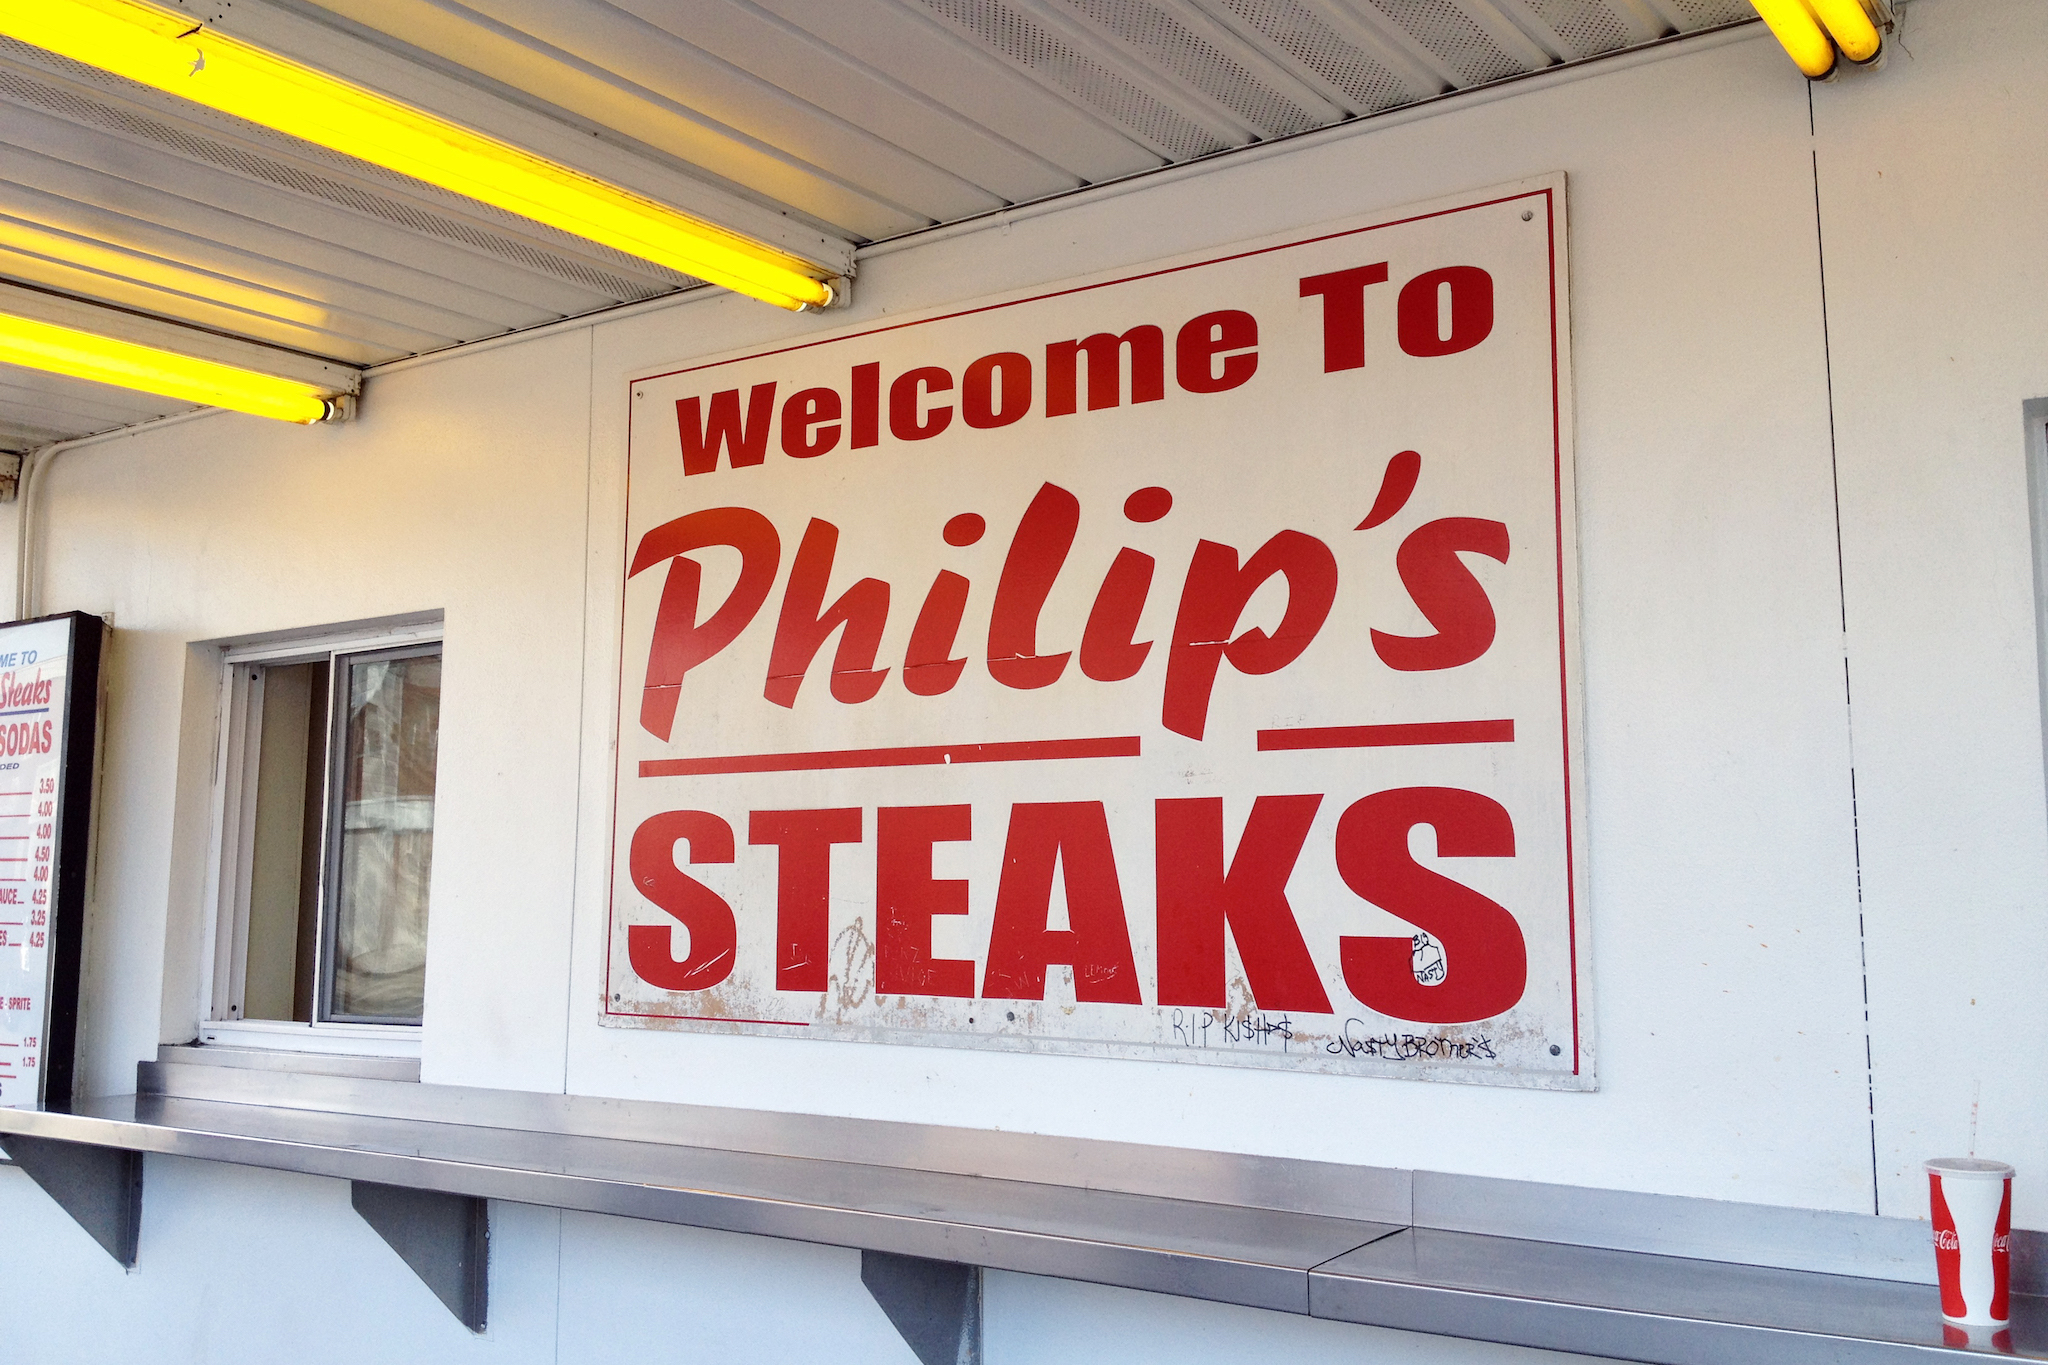 philips steaks philadelphia